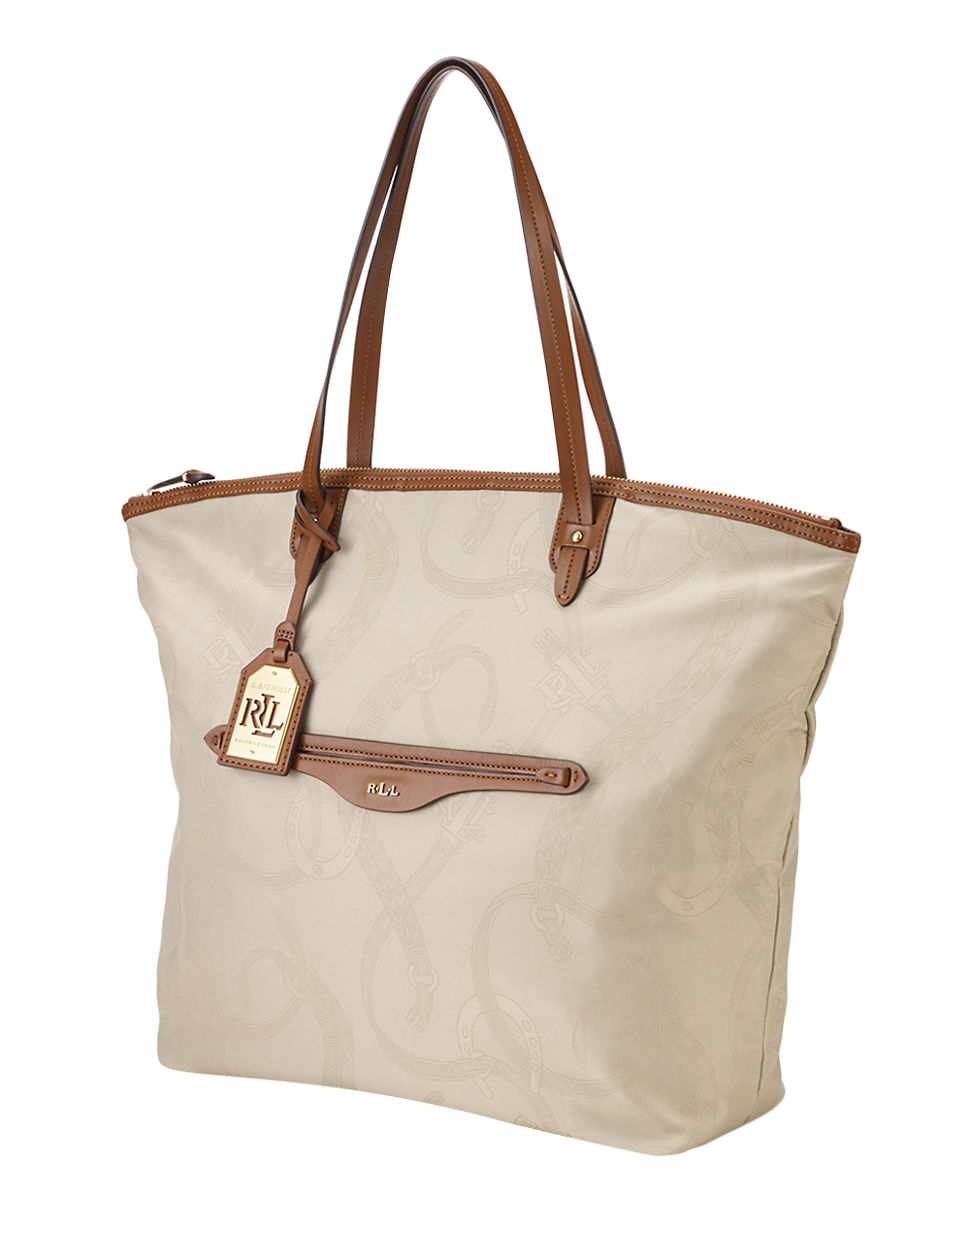 94545afe22 ... purchase lyst lauren by ralph lauren cavalry nylon tote bag in natural  11df9 1c8e7